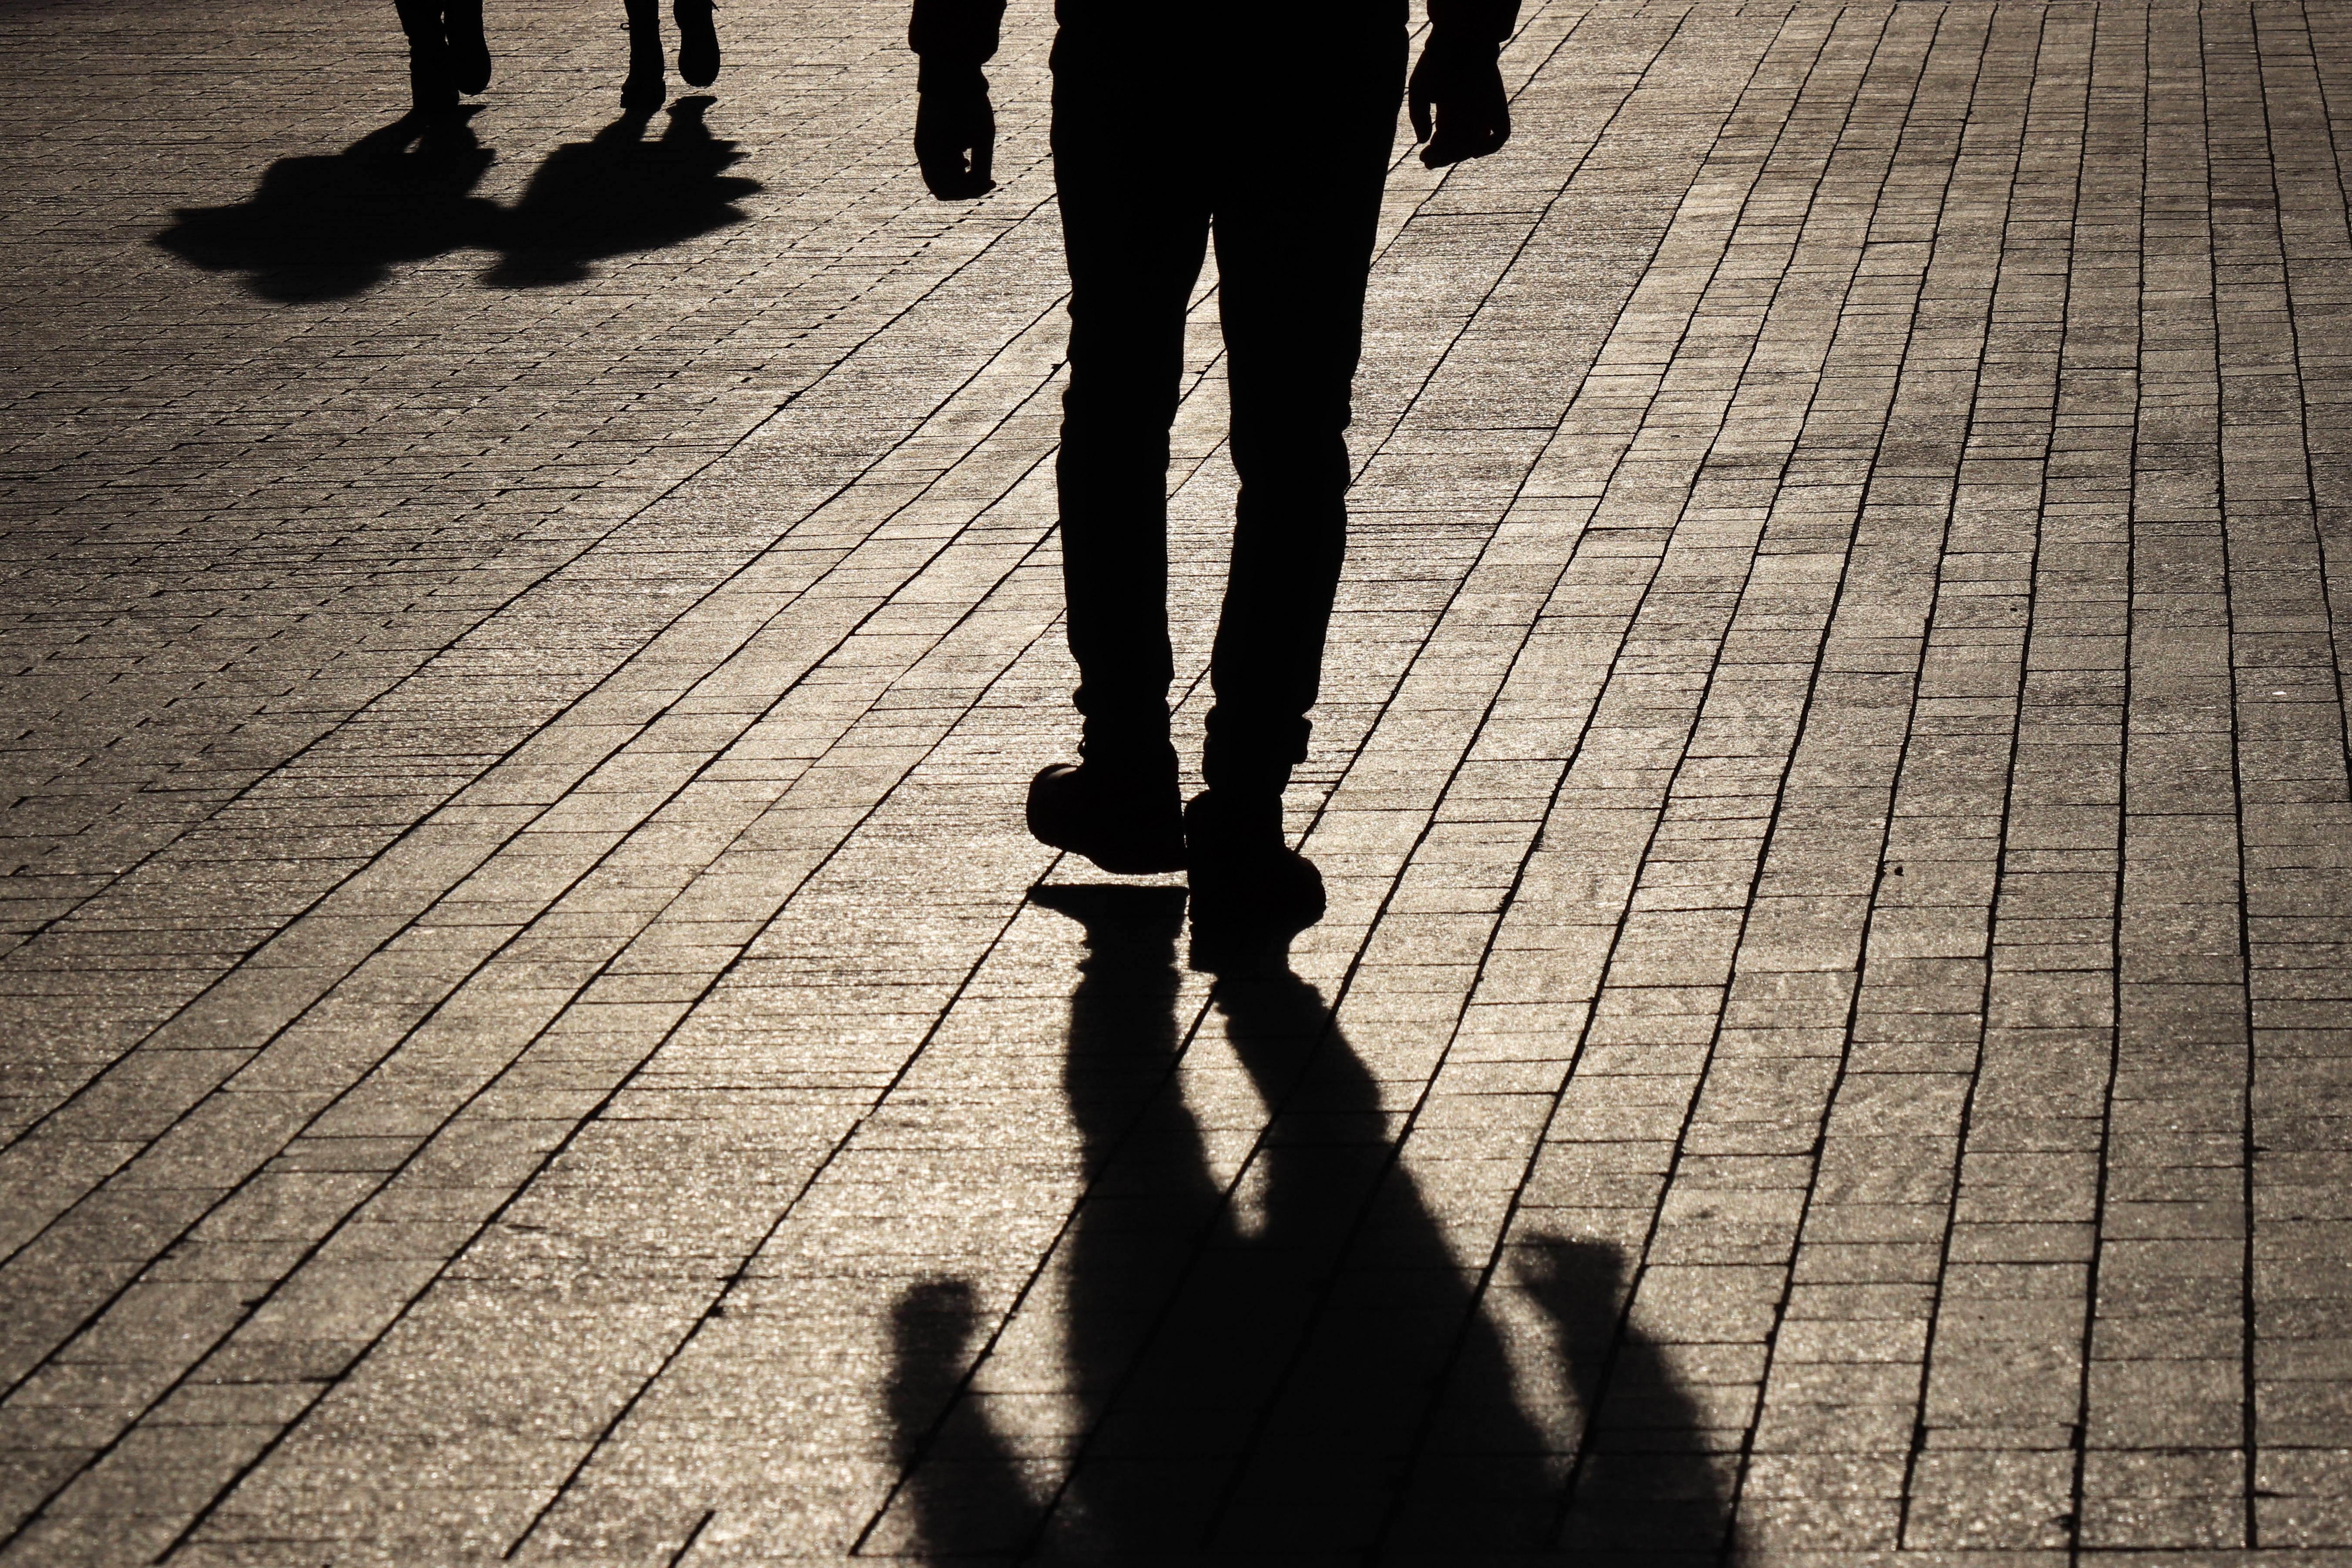 Shadow man walking towards a couple on a street